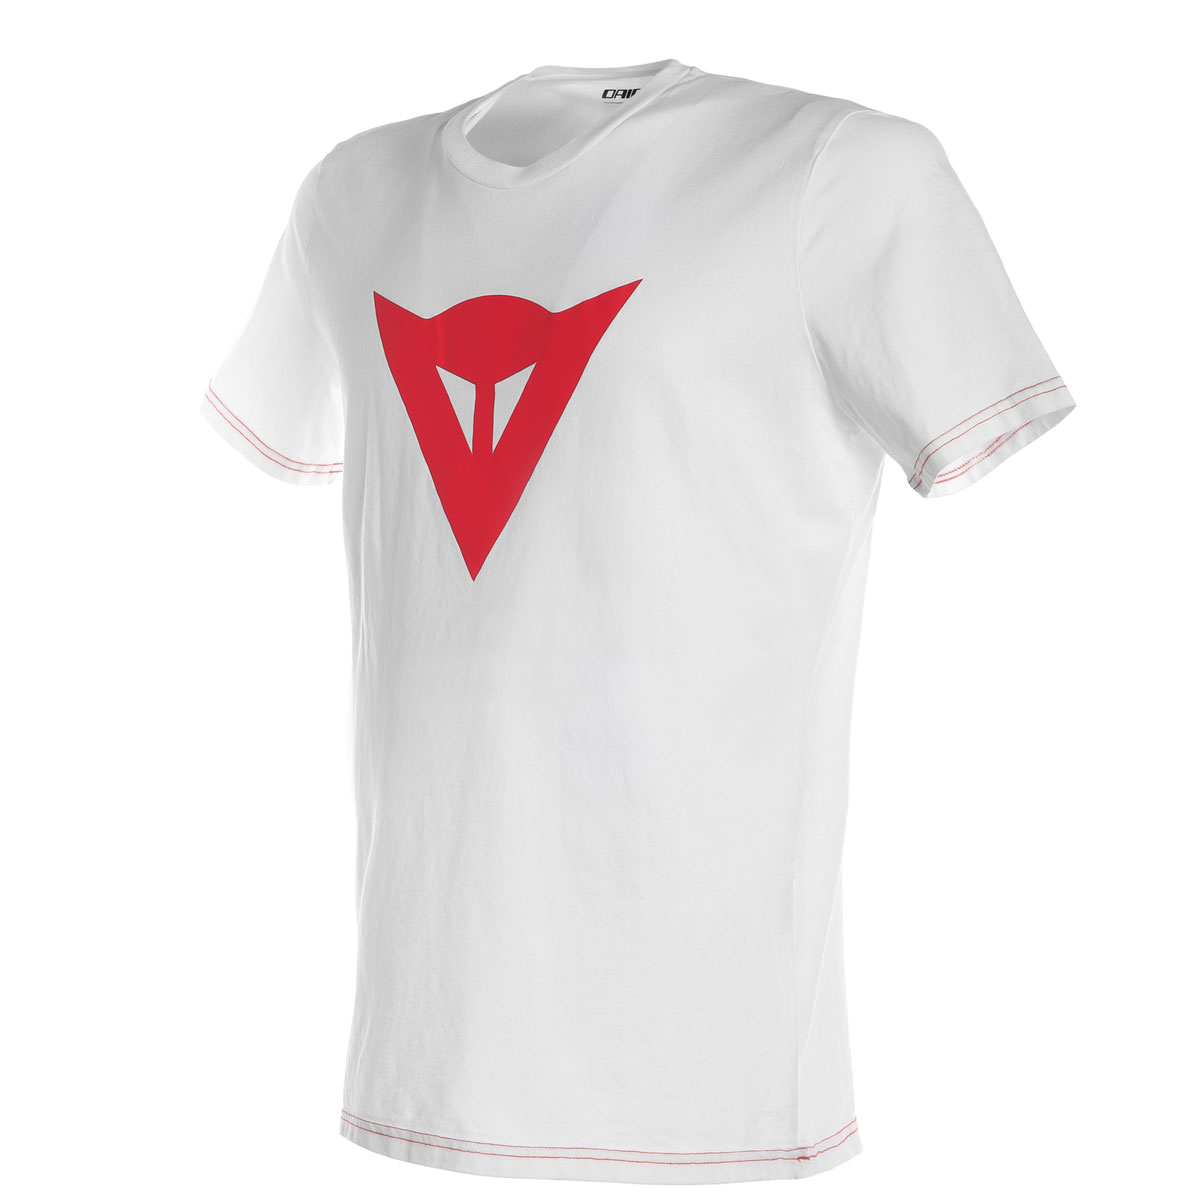 Dainese Men's Speed Demon White T-Shirt